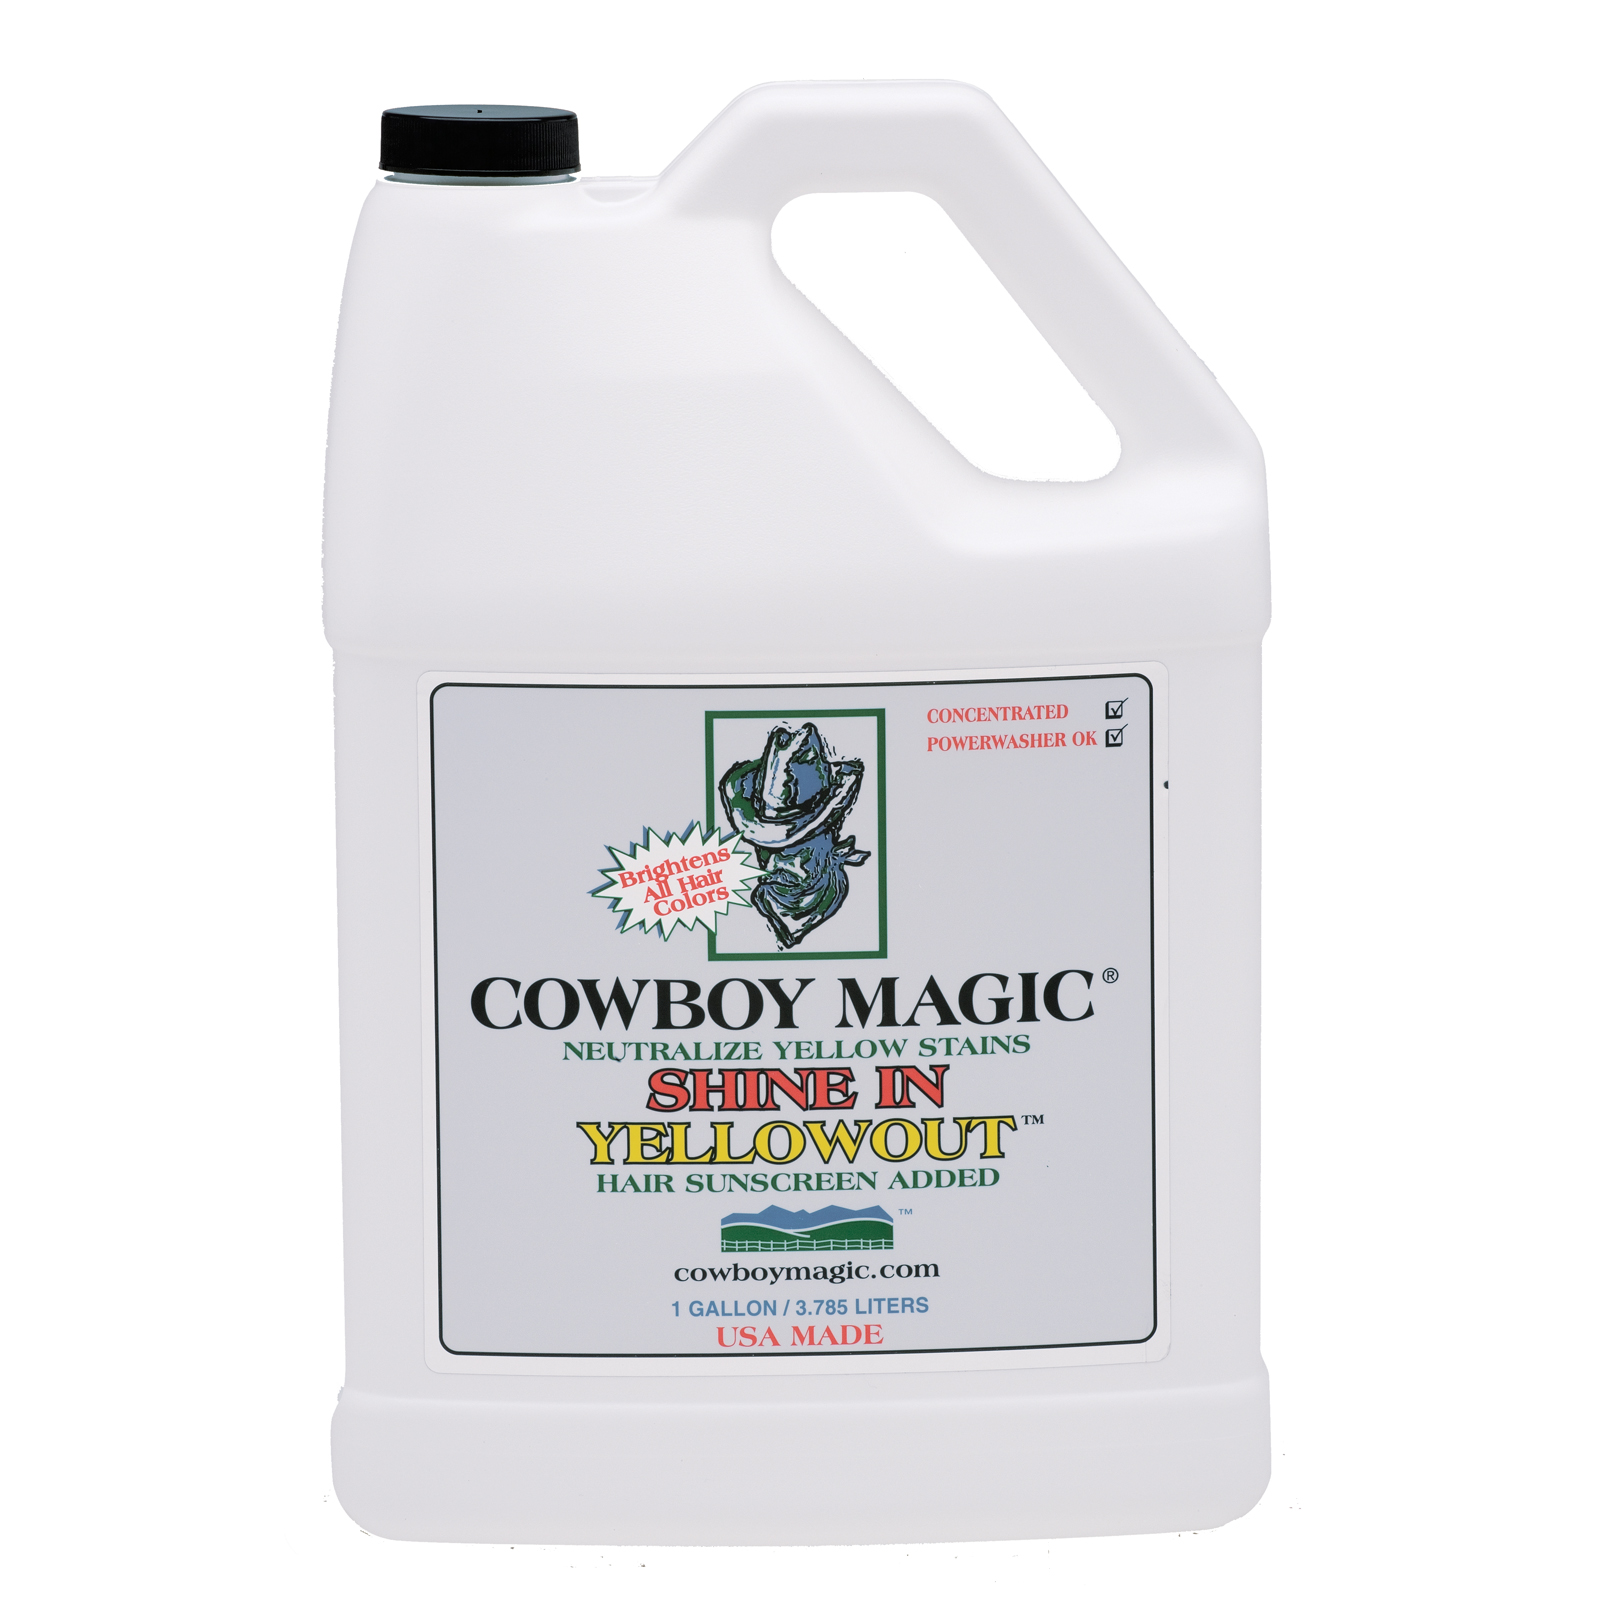 Cowboy Magic Shine In Yellowout™ Shampoo 3785 mL